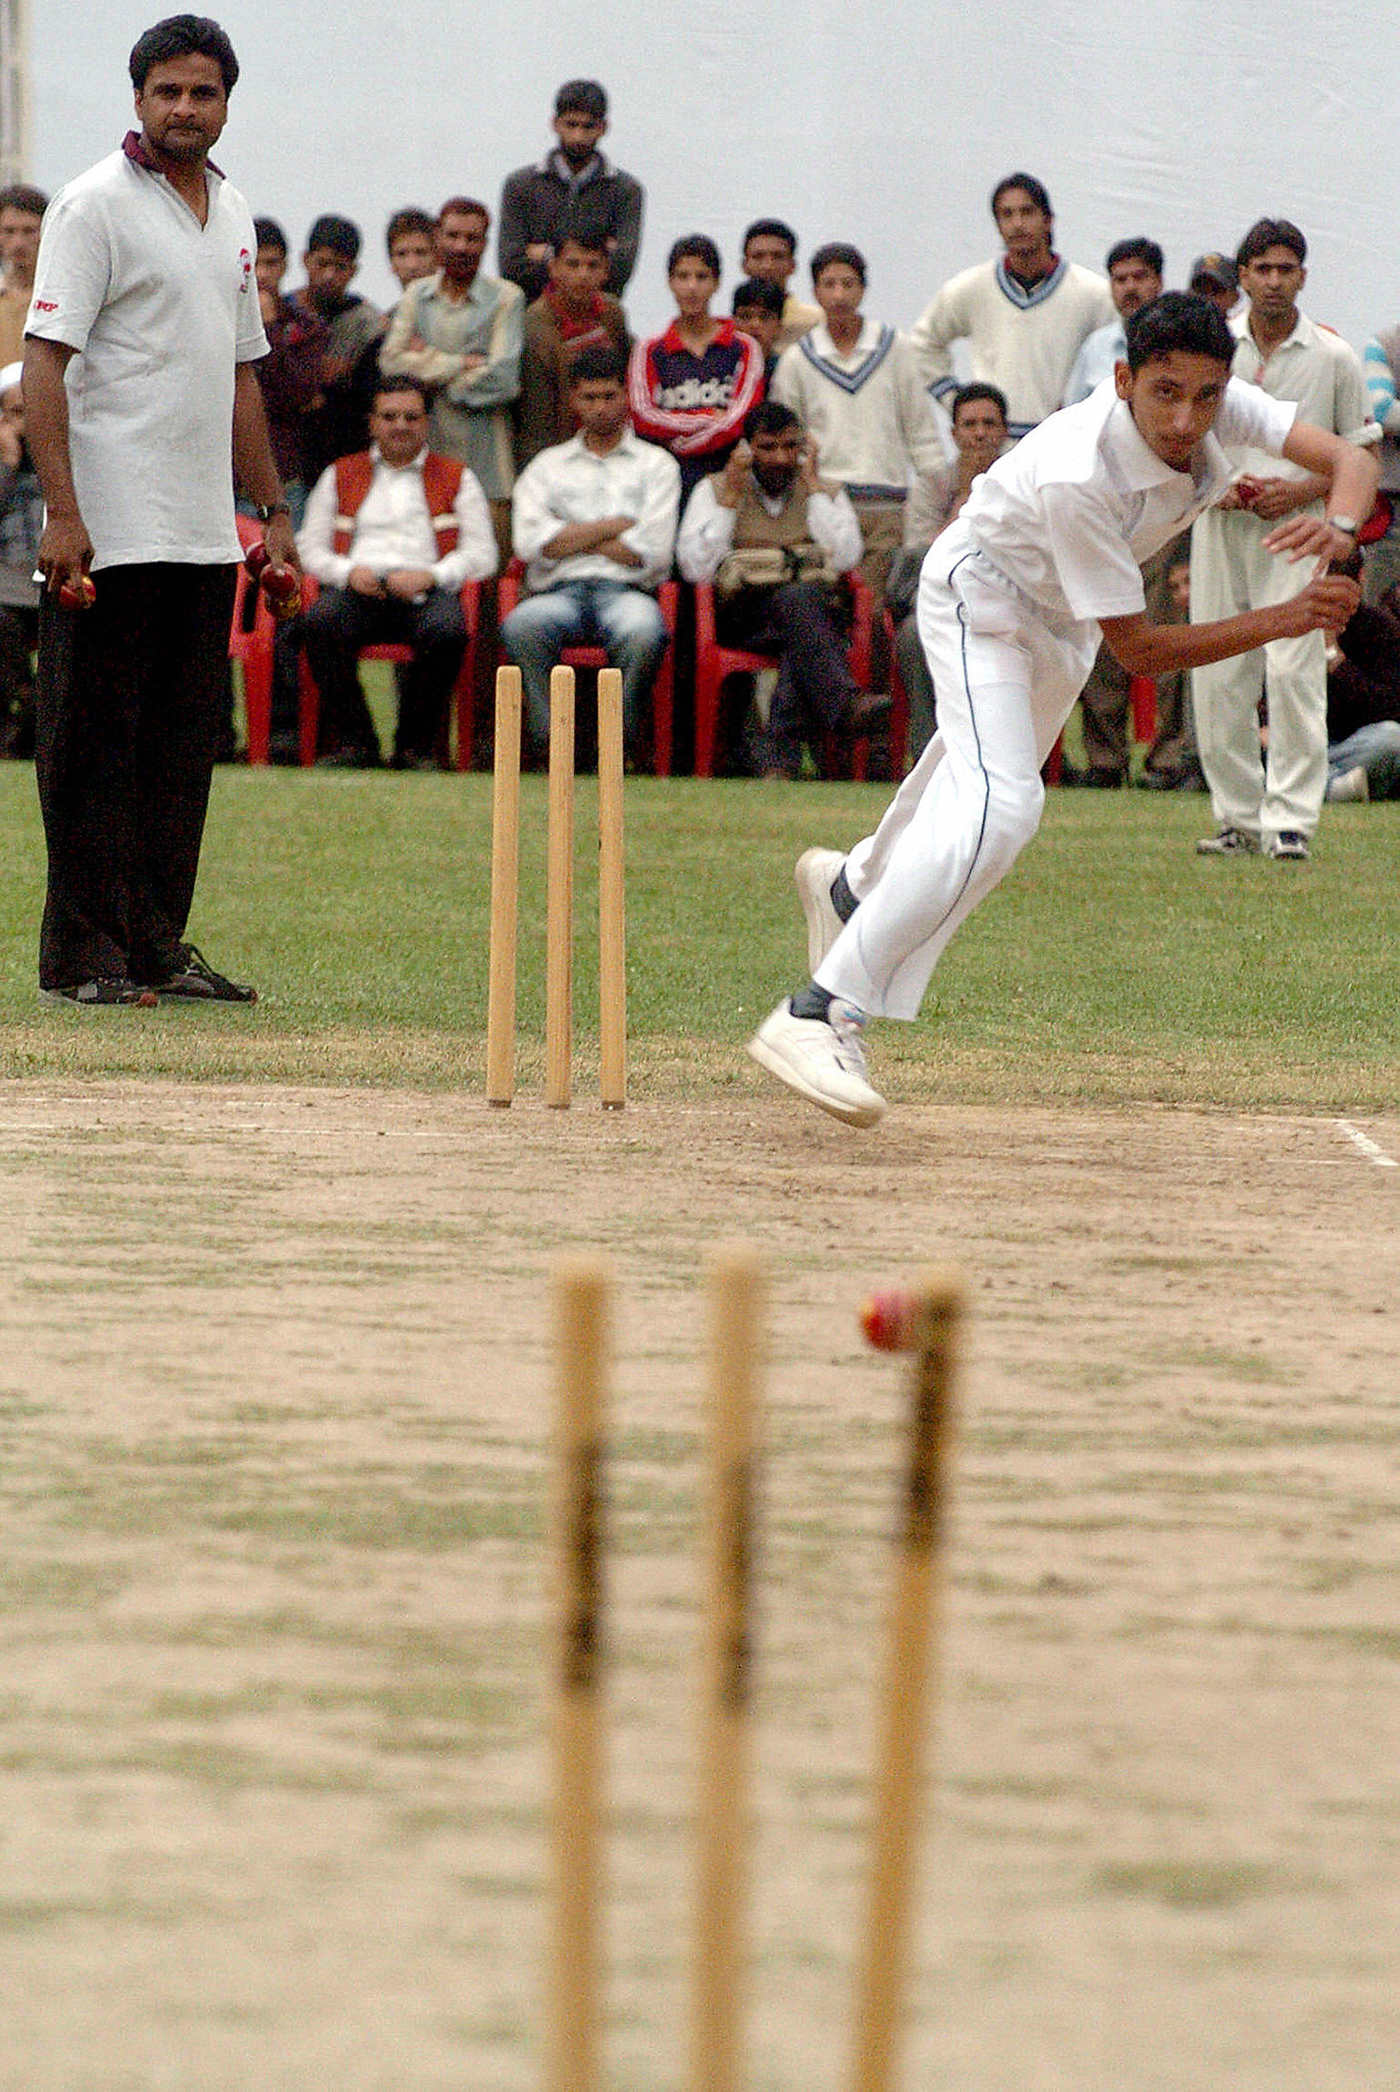 Javagal Srinath, who benefitted from his time at MRF, runs a talent-spotting event for the foundation in Srinagar in 2006